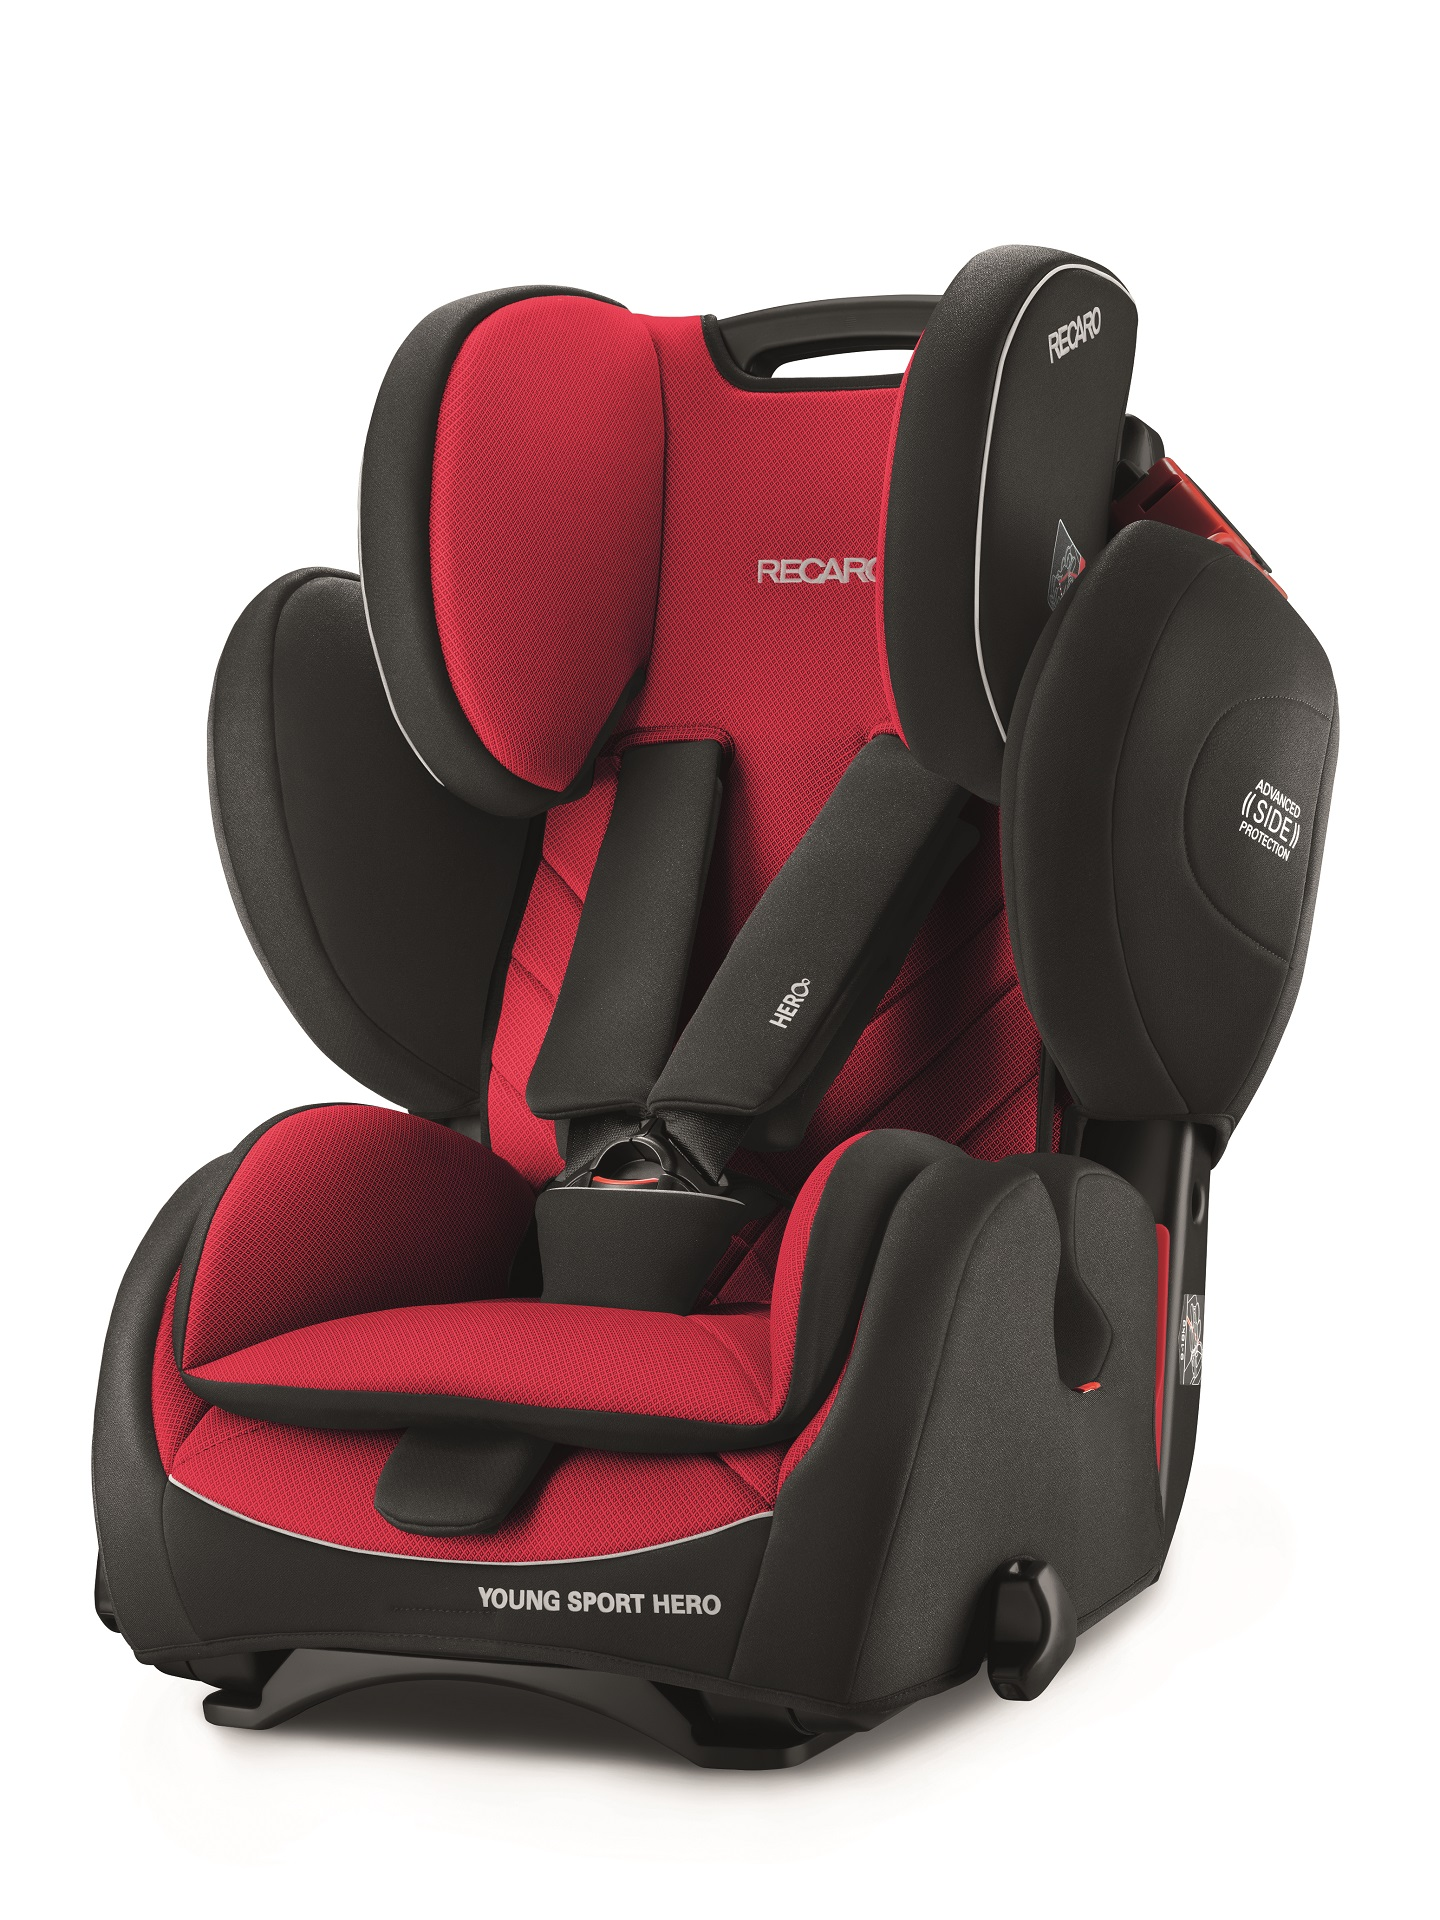 Si ge enfant young sport hero par recaro 2018 racing red for Siege enfant